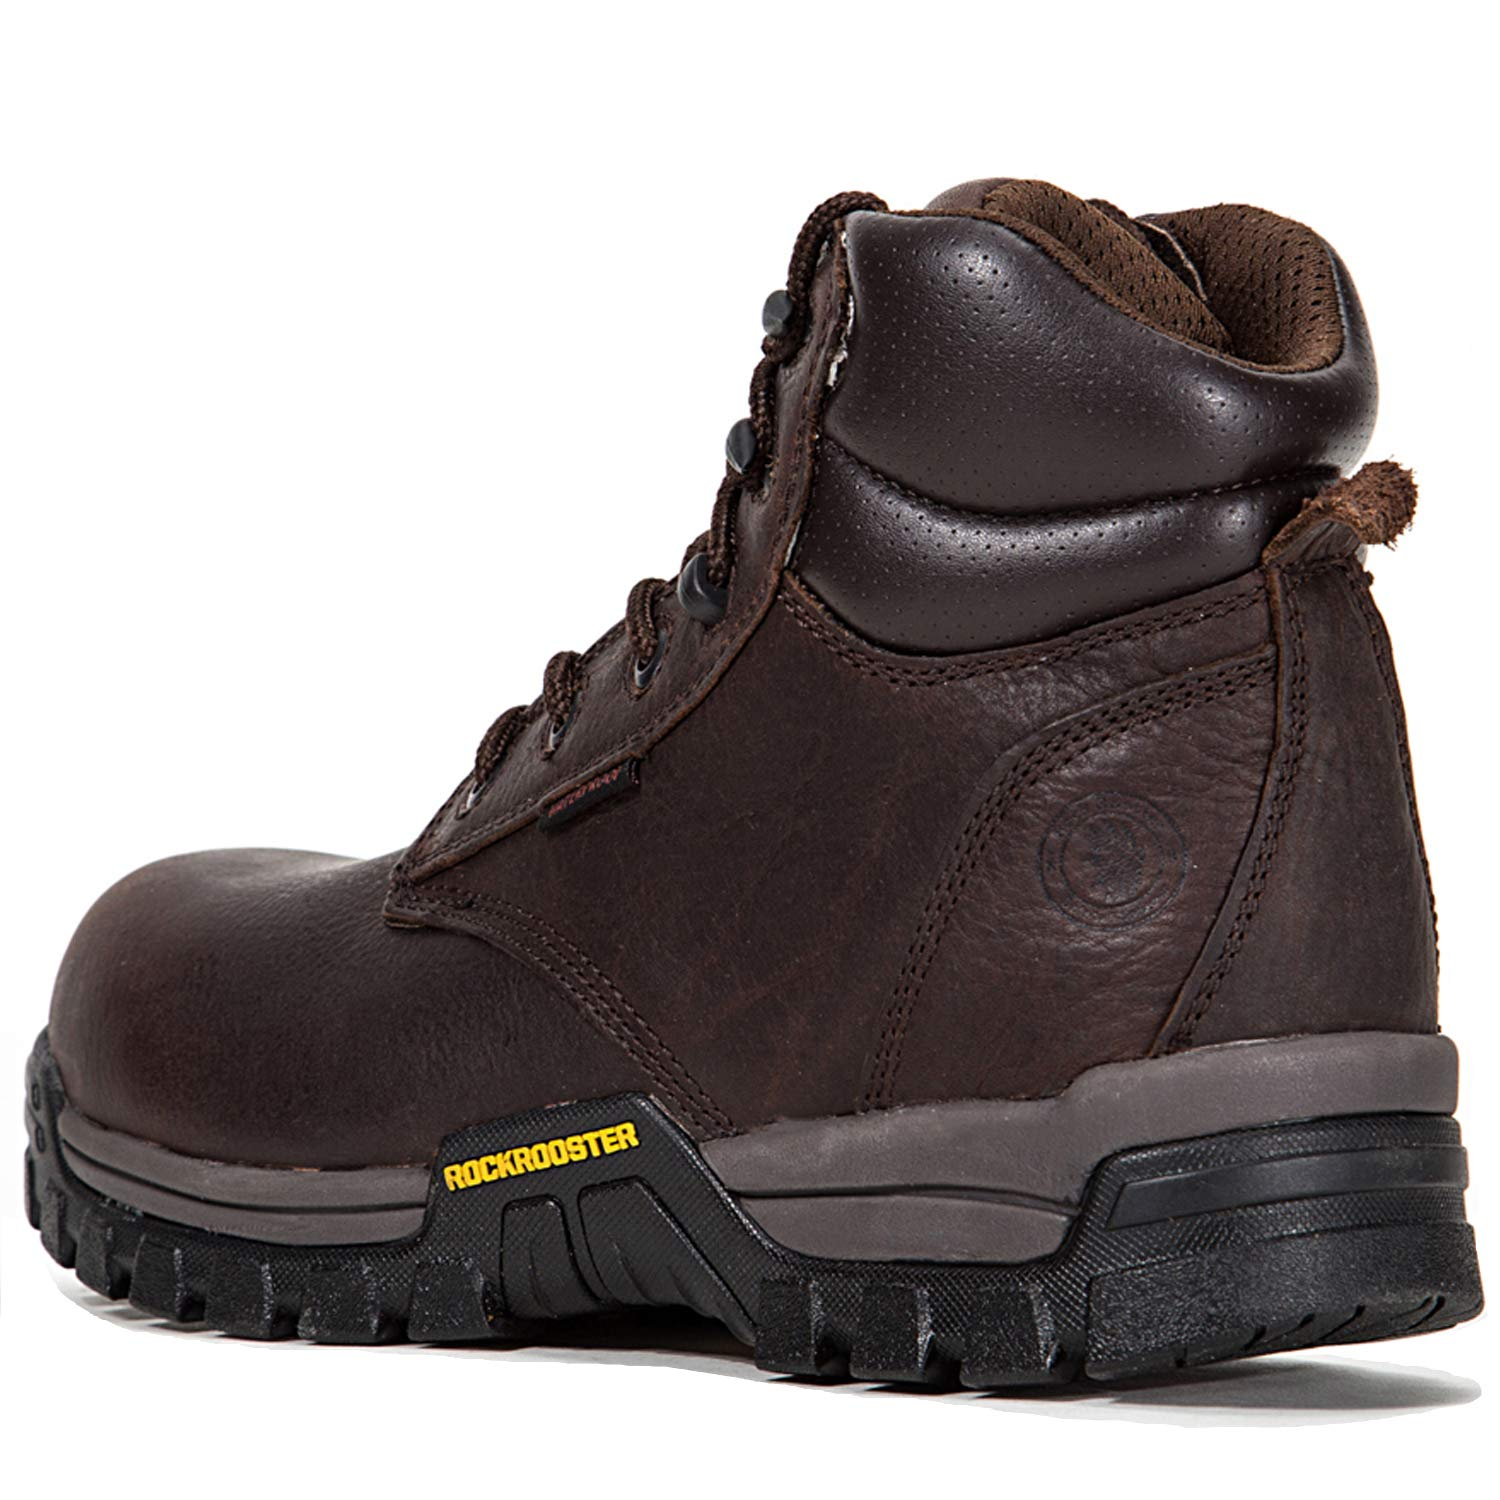 f51866dd7eb Amazon.com | ROCKROOSTER Work Boots for Men, Composite/Soft Toe ...